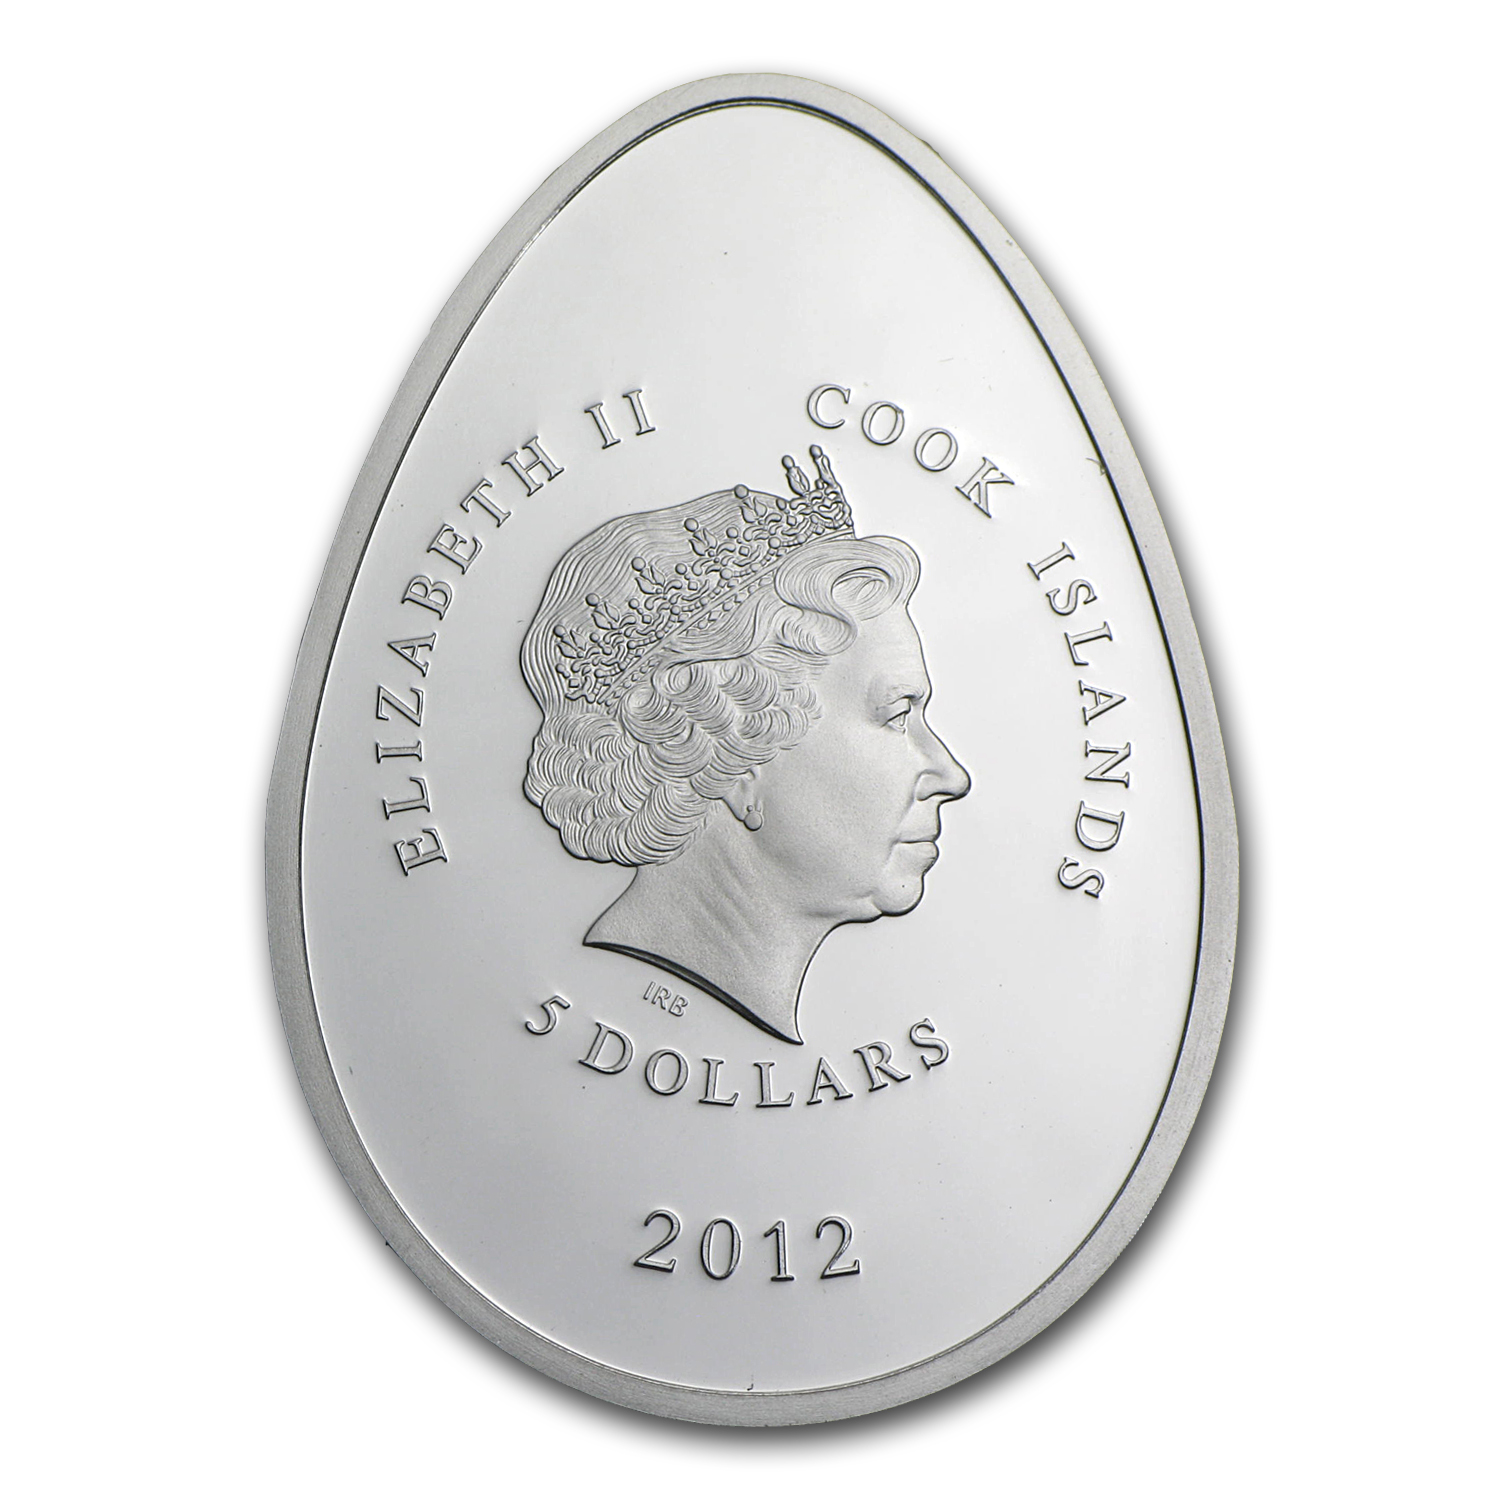 2012 Cook Islands Proof Silver Imperial Egg in Cloisonné Red